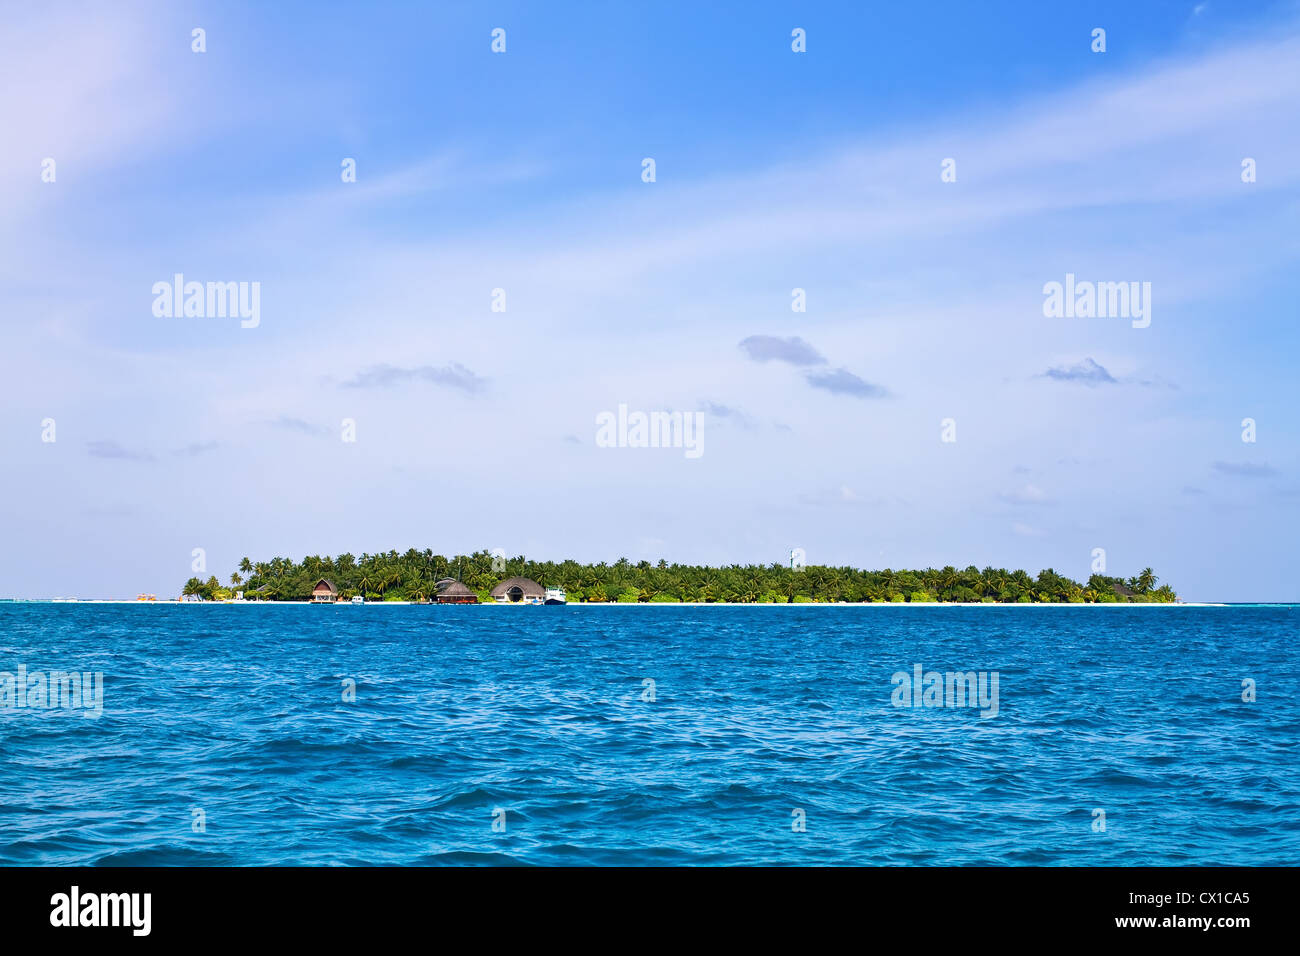 Aerial view of Maldive islands - Stock Image